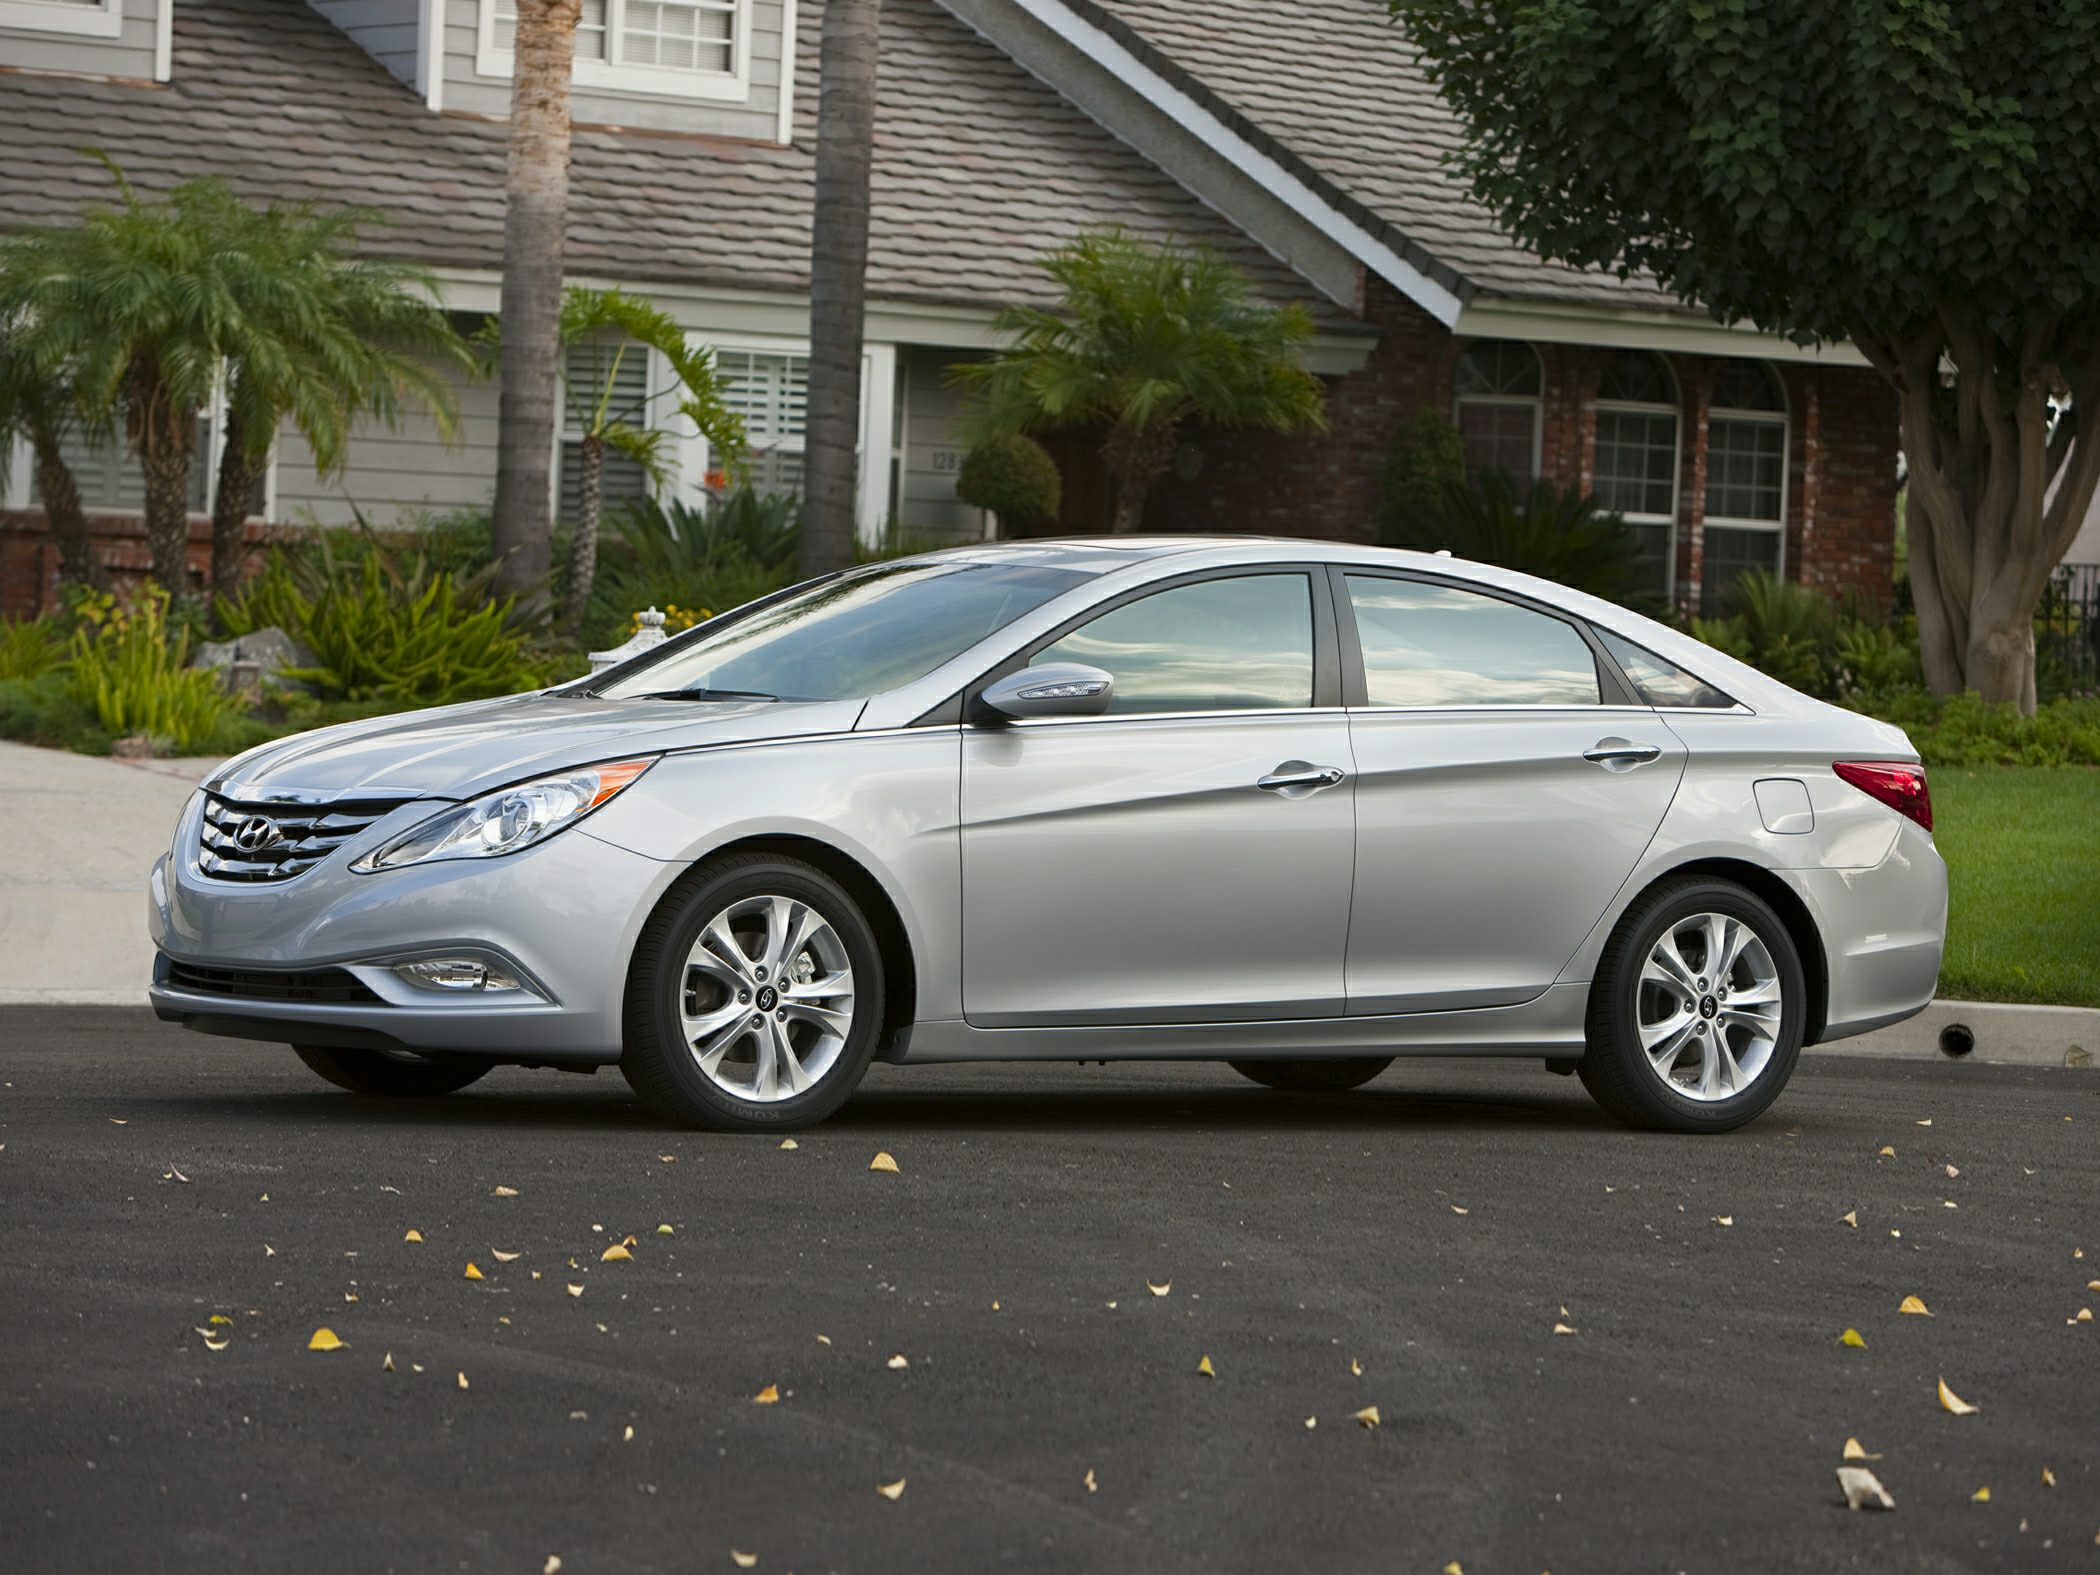 2011 Hyundai Sonata GLS Gassss saverrrr Hey Look right here New Arrival Who could say no to a t